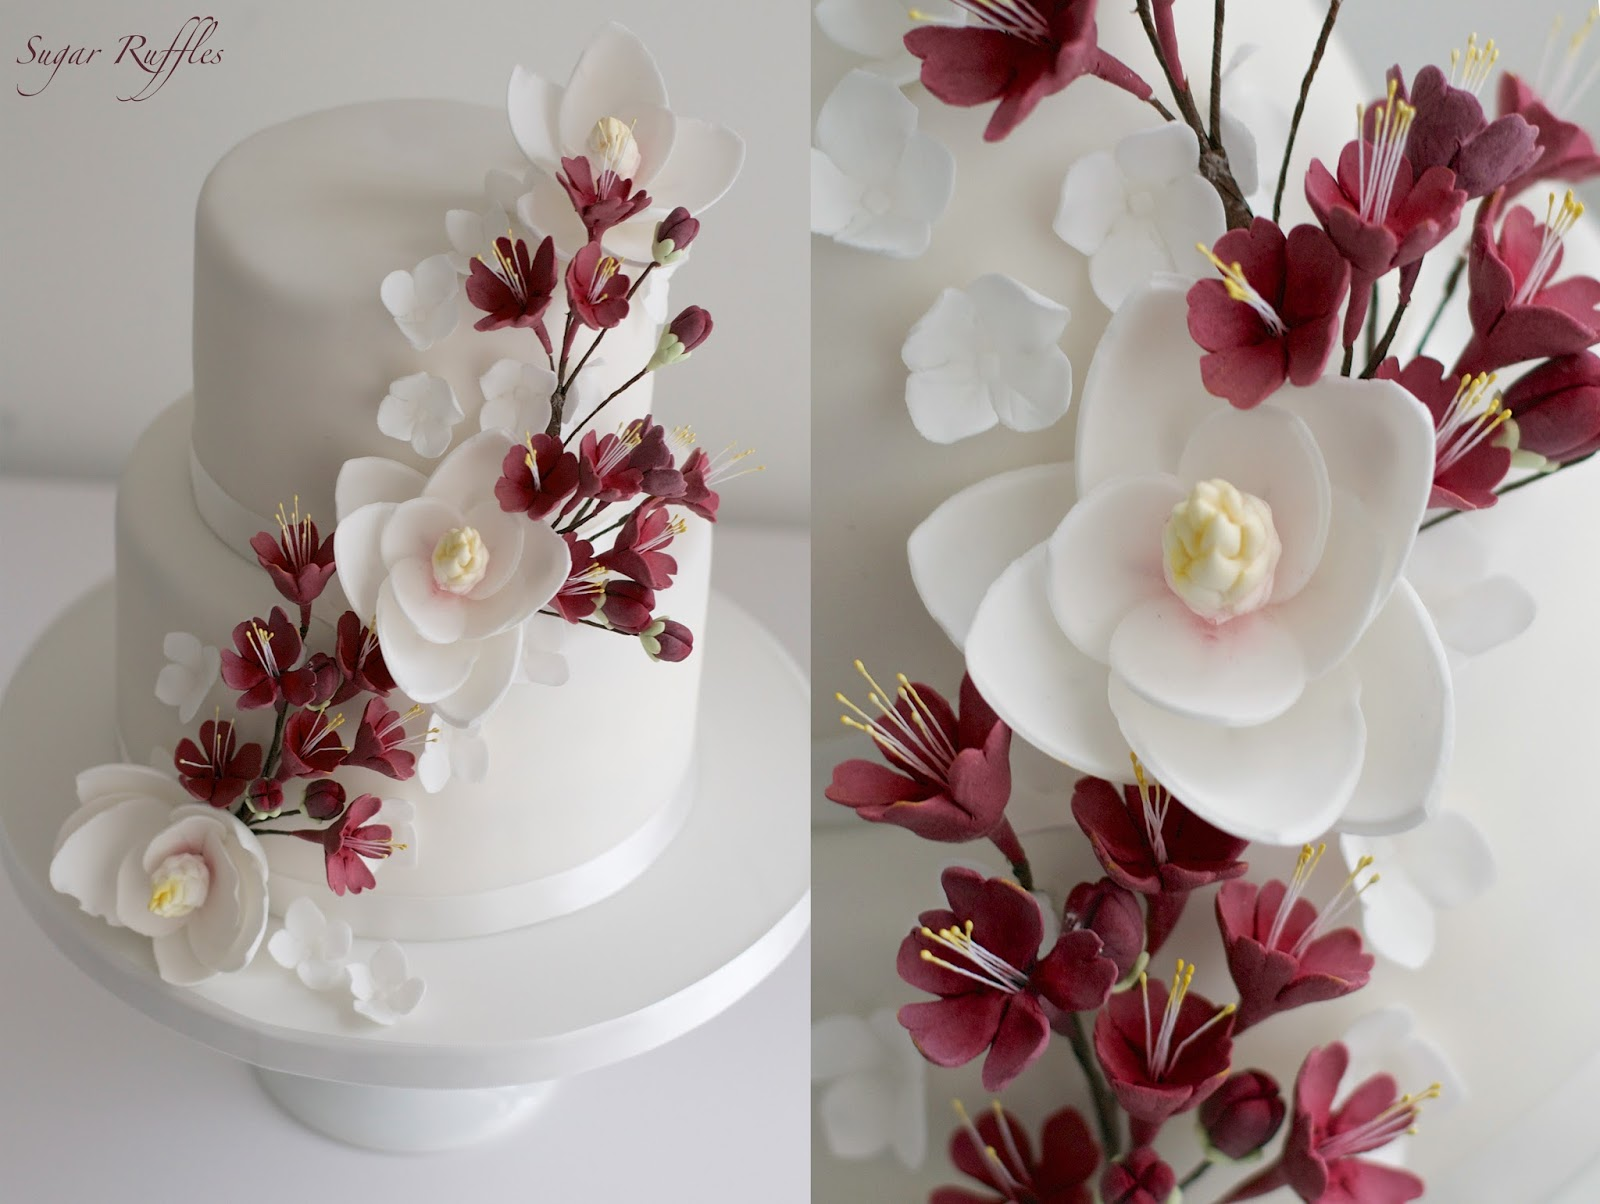 Two tier wedding cakes with orchids flowers